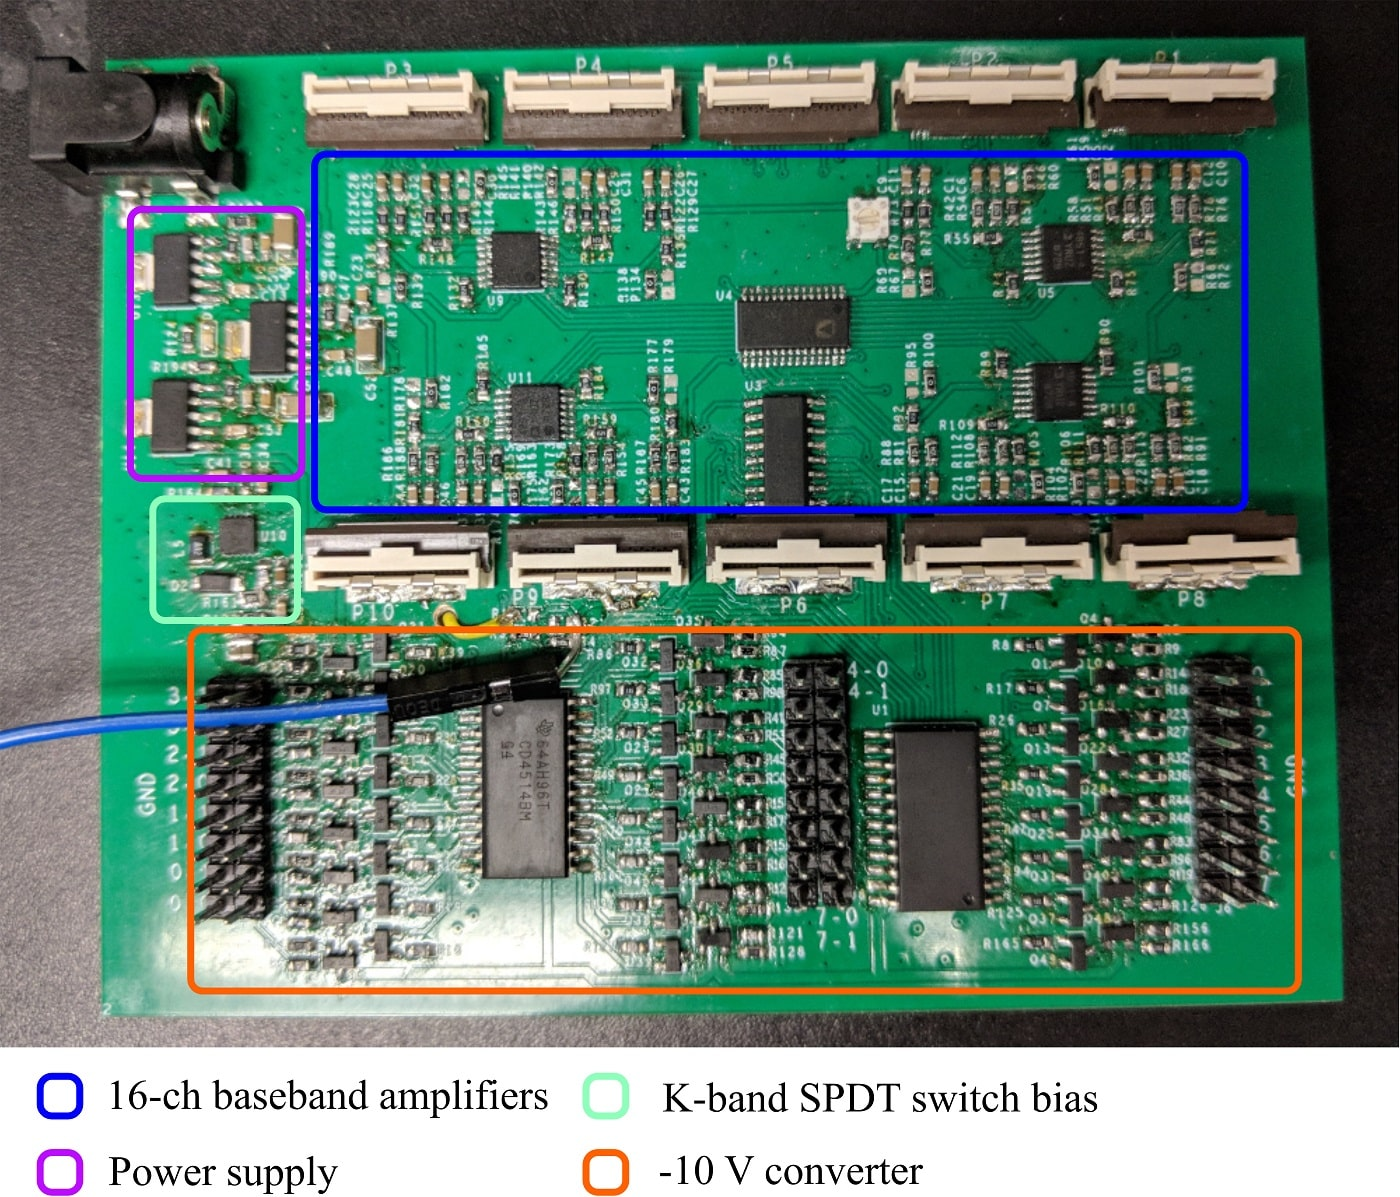 Fig. 4. Photo of the baseband board